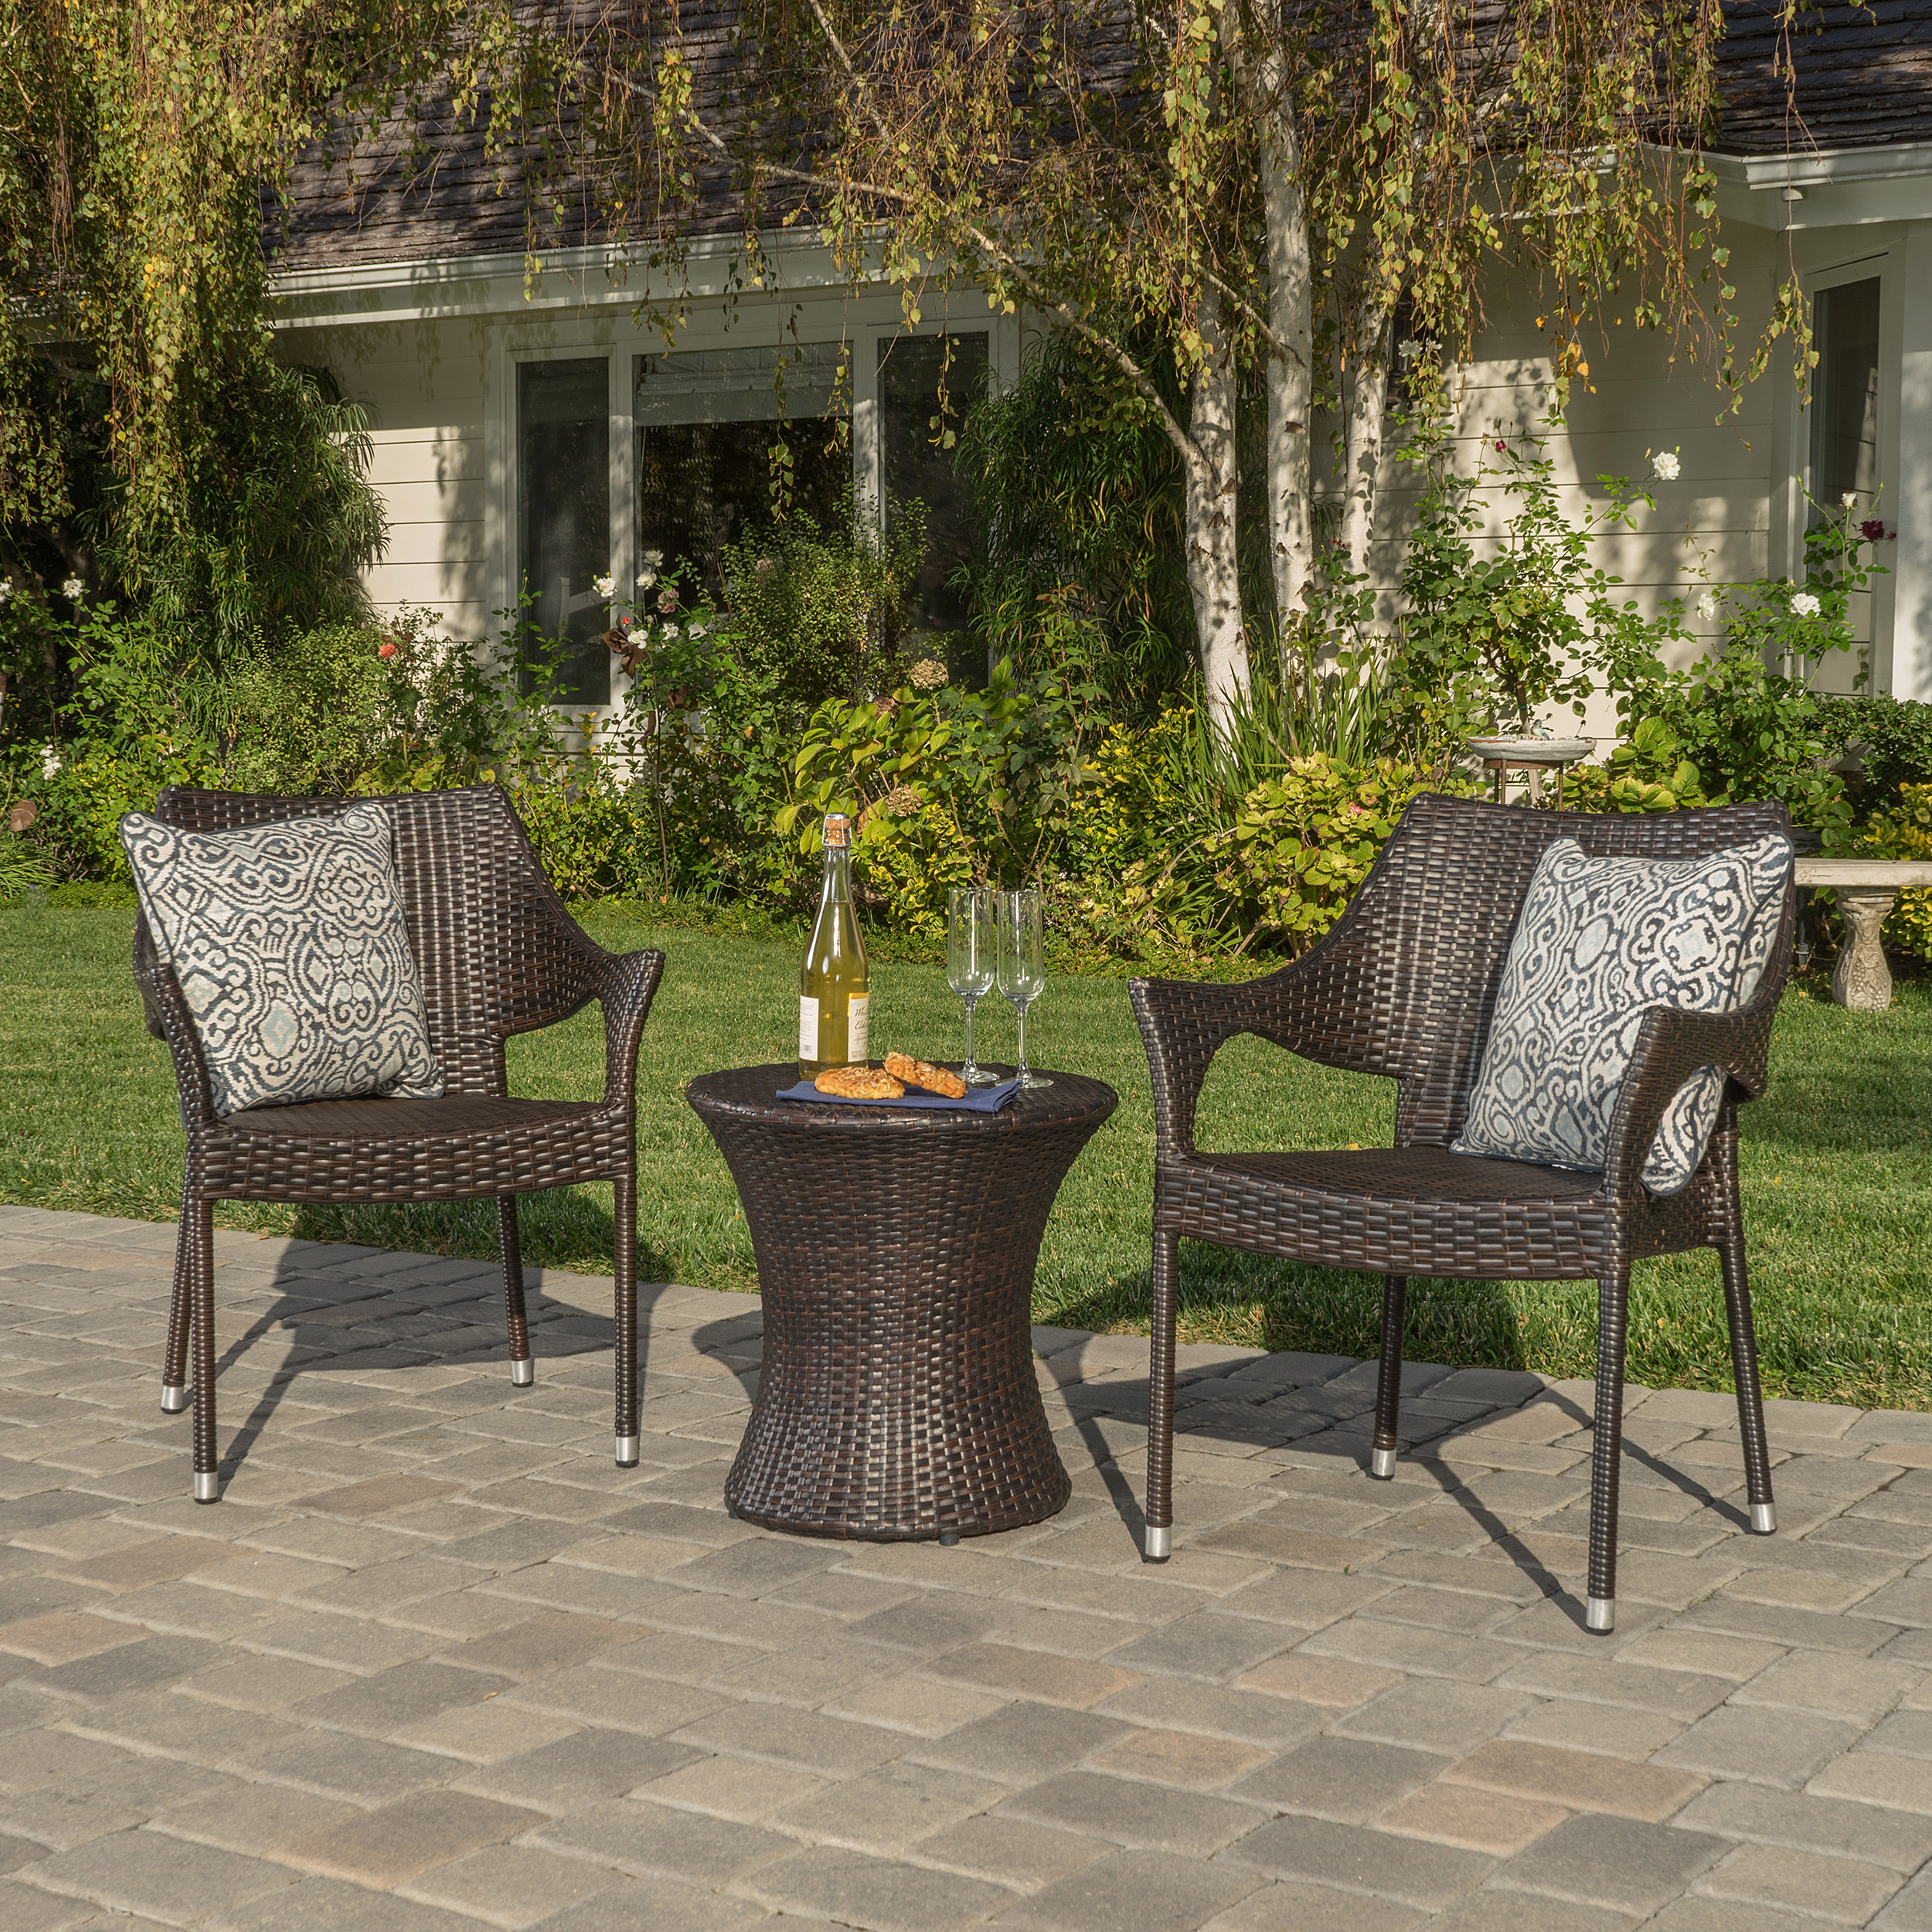 Tortuga Outdoor Brown Wicker 3 Piece Stacking Armchair and Table Set by GDF Studio